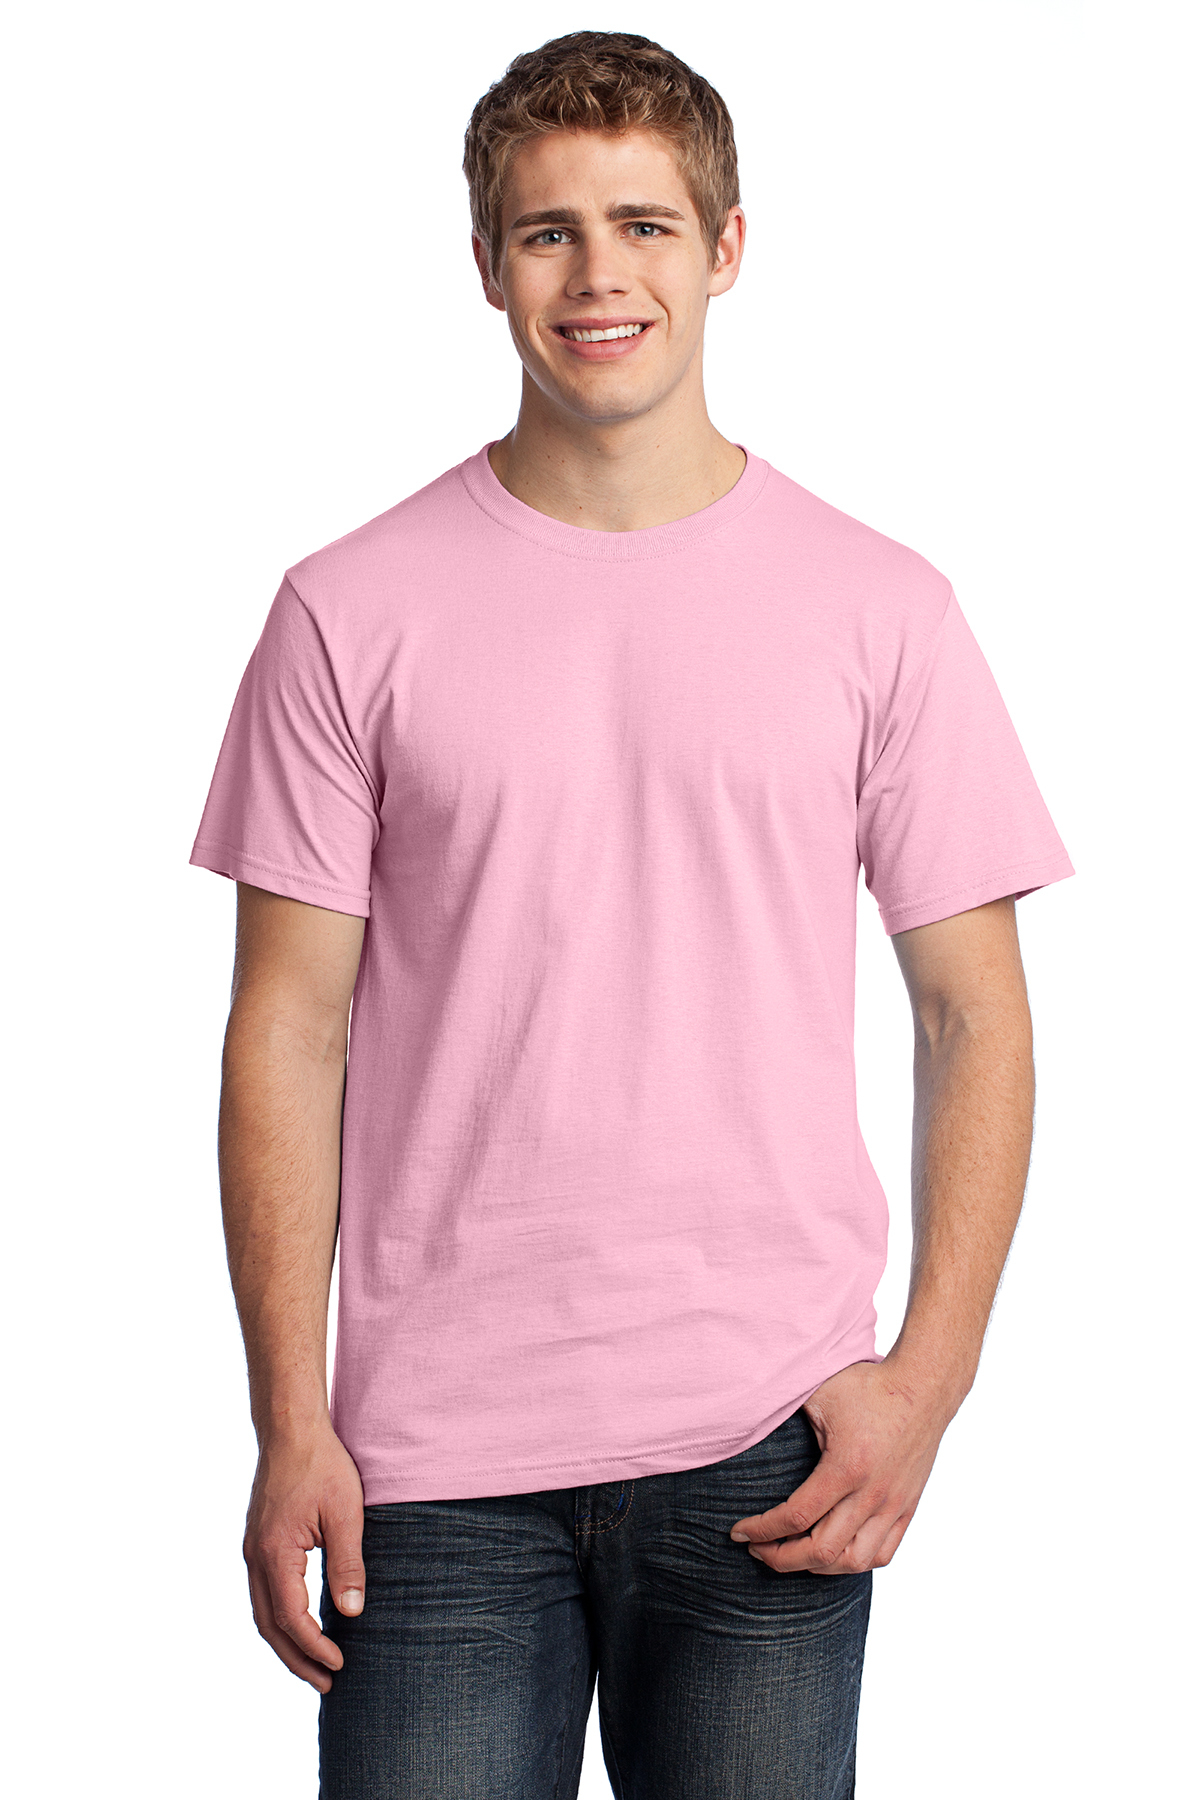 60397dc7 Fruit of the Loom® HD Cotton™ 100% Cotton T-Shirt   5-5.6 100 ...